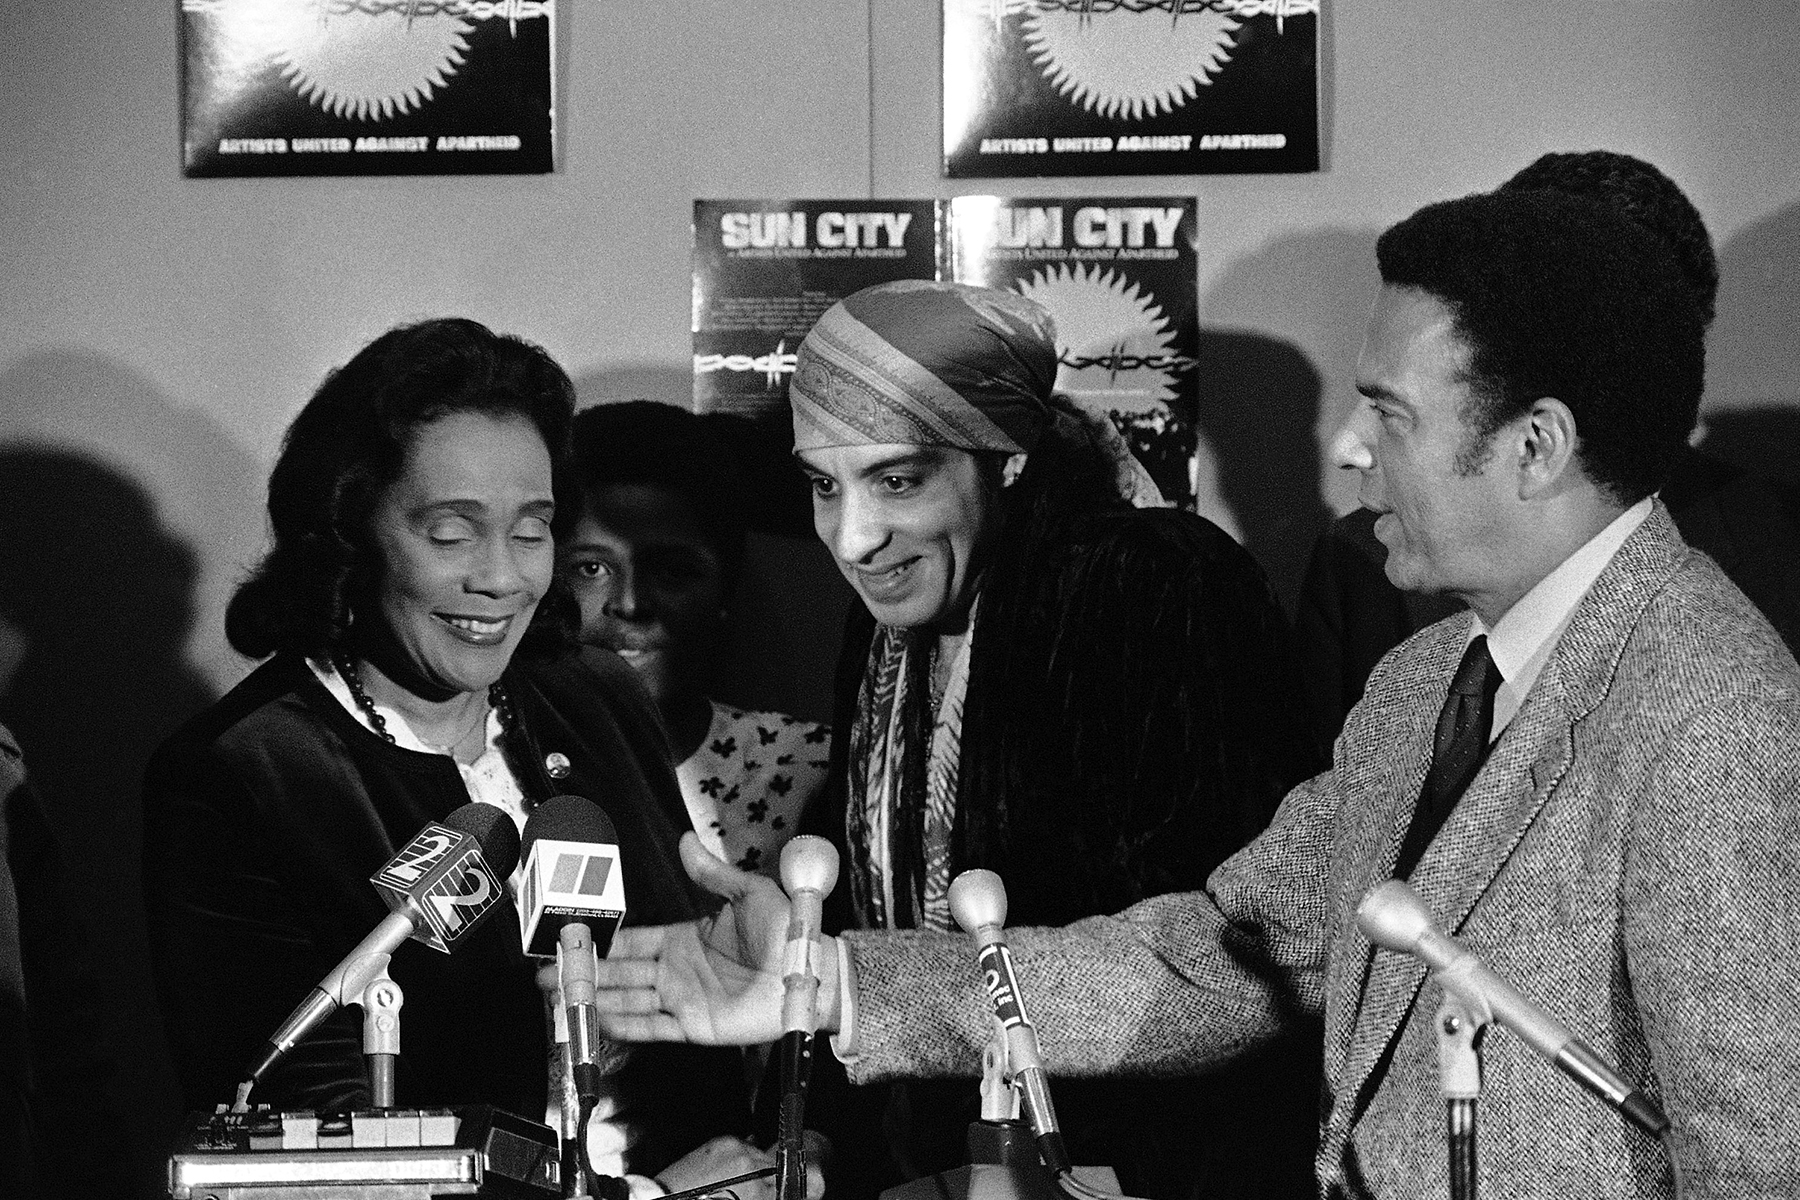 """""""Litle Steven"""" Van Zandt, who organized the anti-apartheid """"Sun City"""" recording, joins a press conference in Atlanta, Thursday, Dec. 19, 1985 with Mrs. Coretta Scott King, left, and Atlanta Mayor Andrew Young, right. Mrs. King, the widow of Dr Martin Luther King, Jr., accepted two checks of $25,000 each from Artists United Against Apartheid who made the record. (AP Photo/Charles Kelly)"""